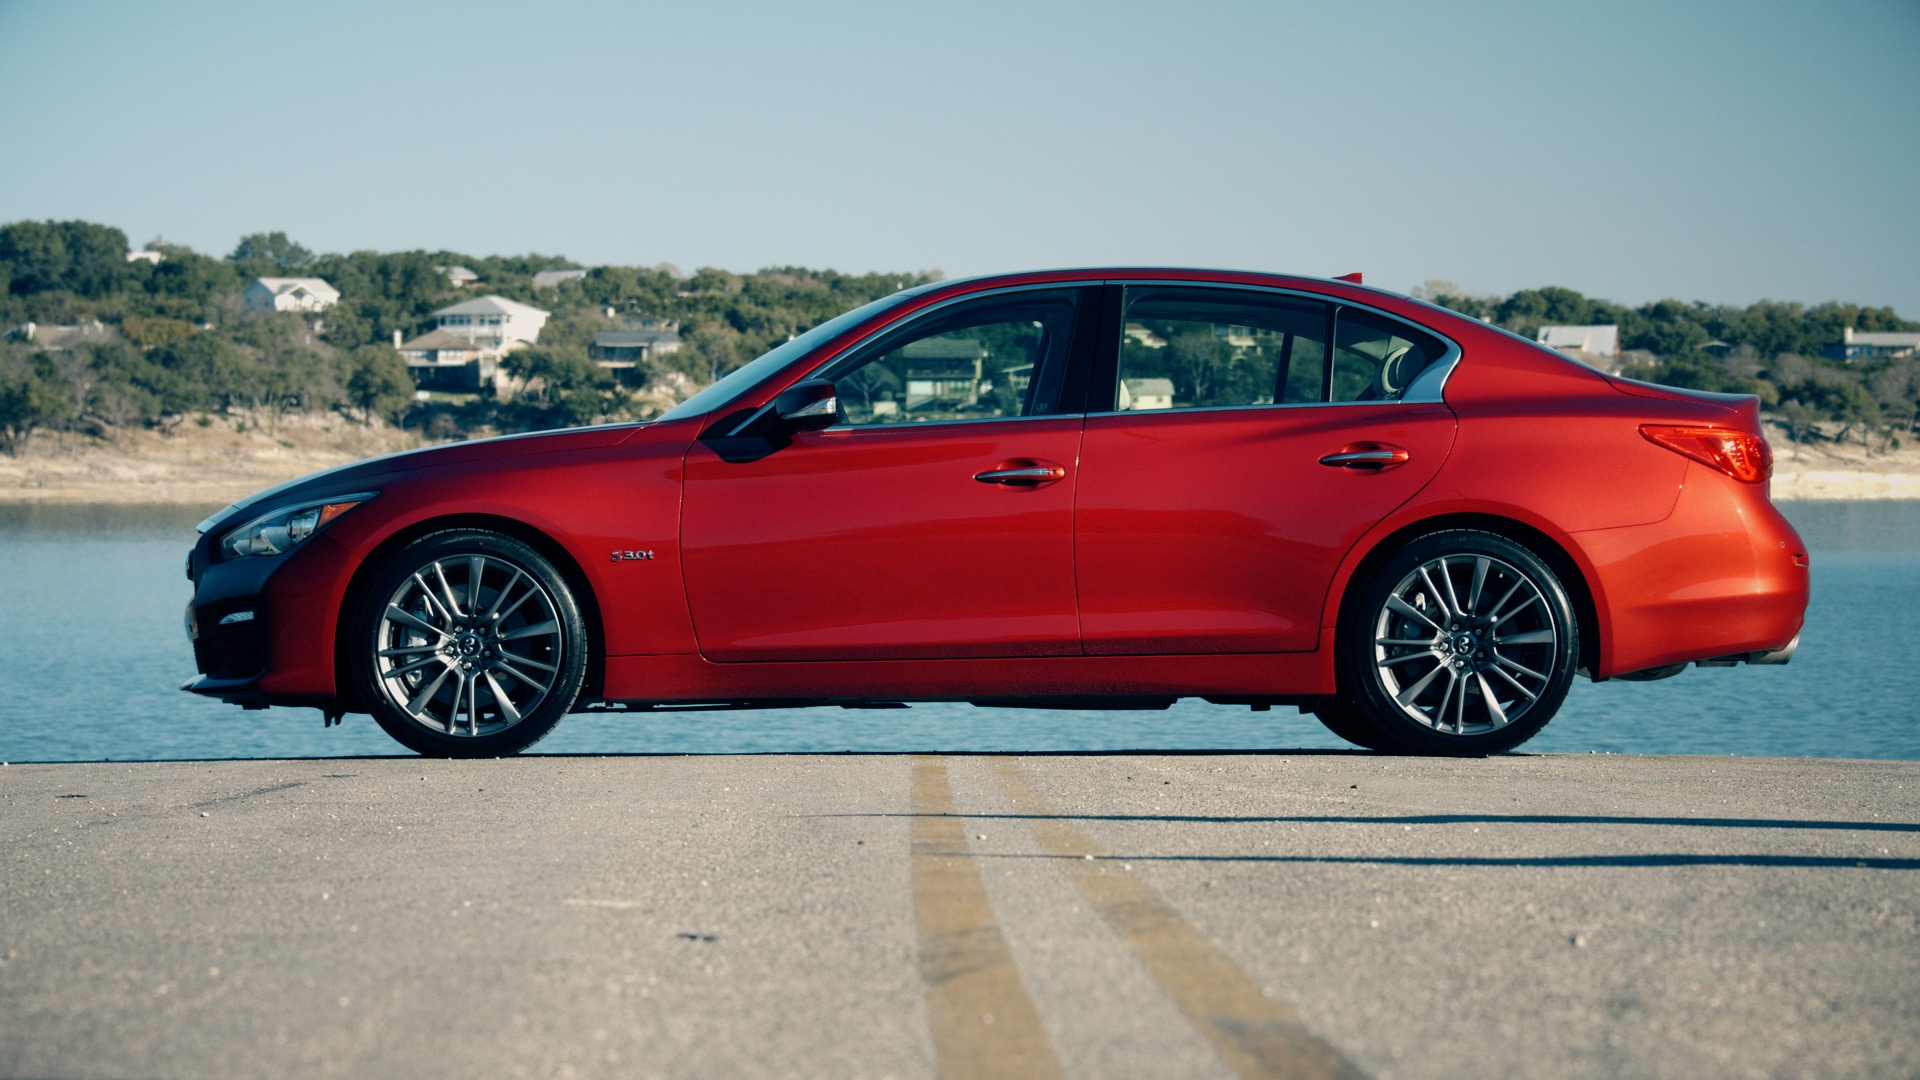 Video: The Infiniti Q50s is like having more than 300 cars in one